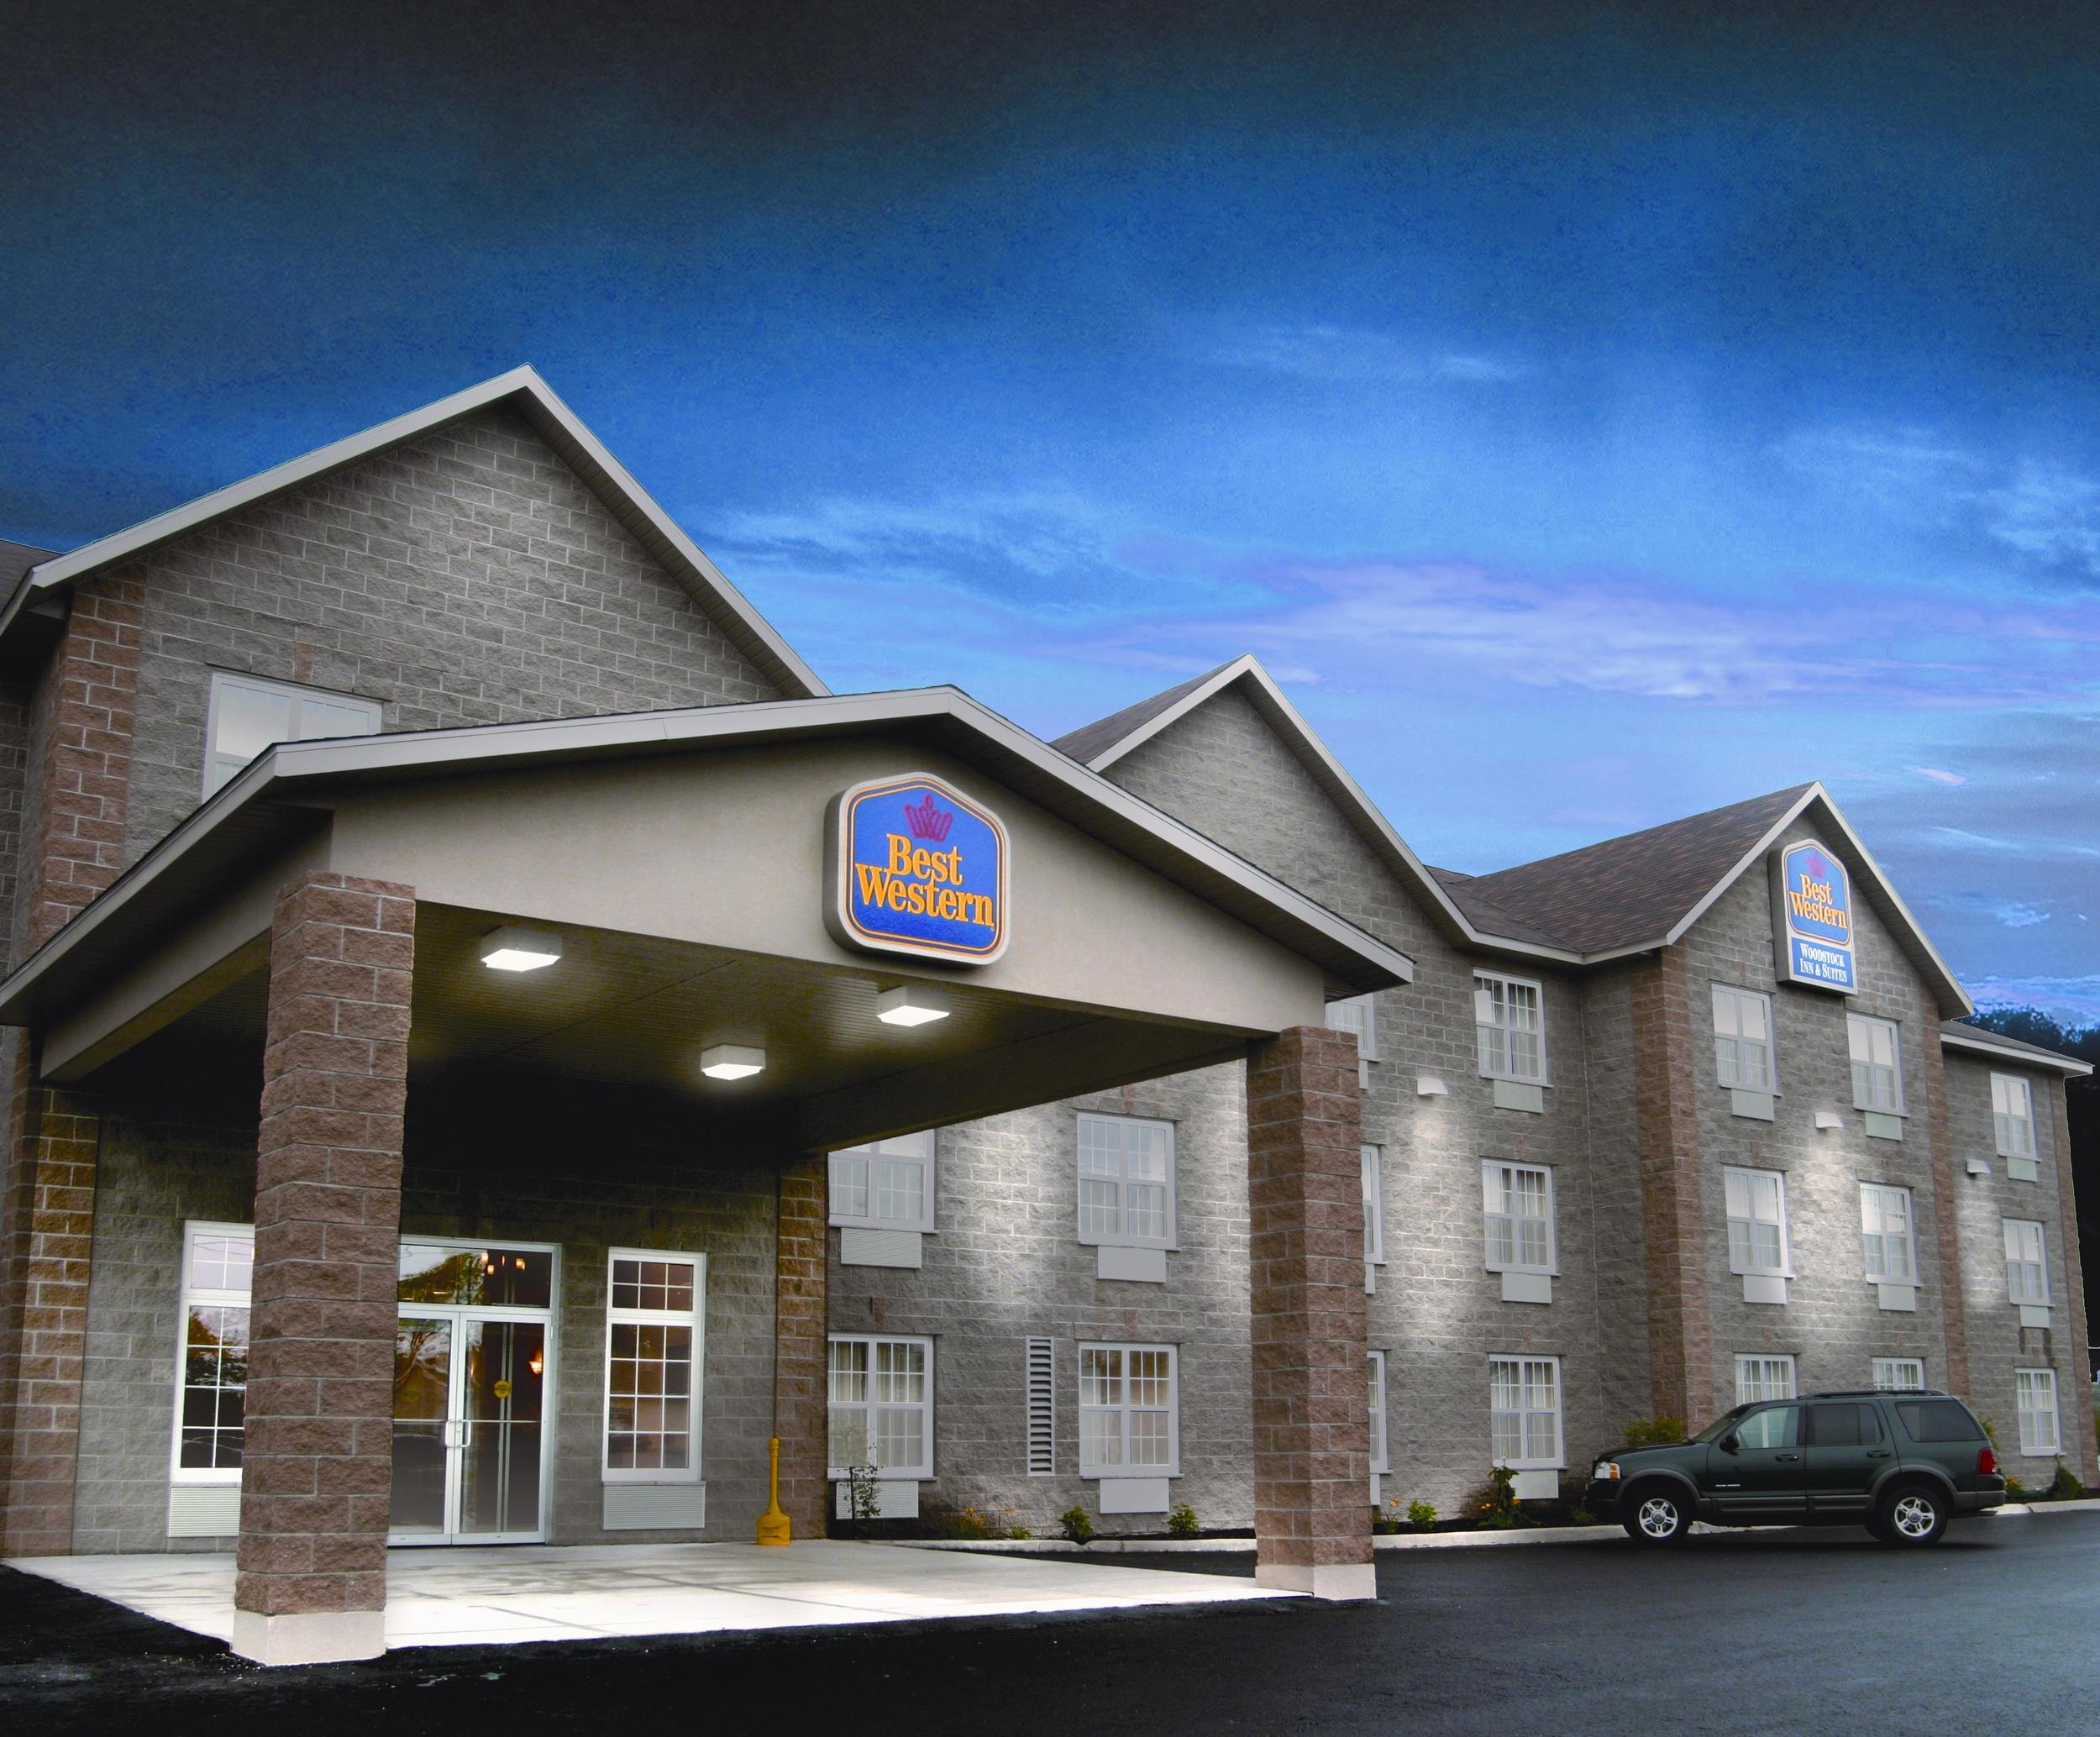 woodstock-illinois-il-Best-western-hotels-quaint-charm